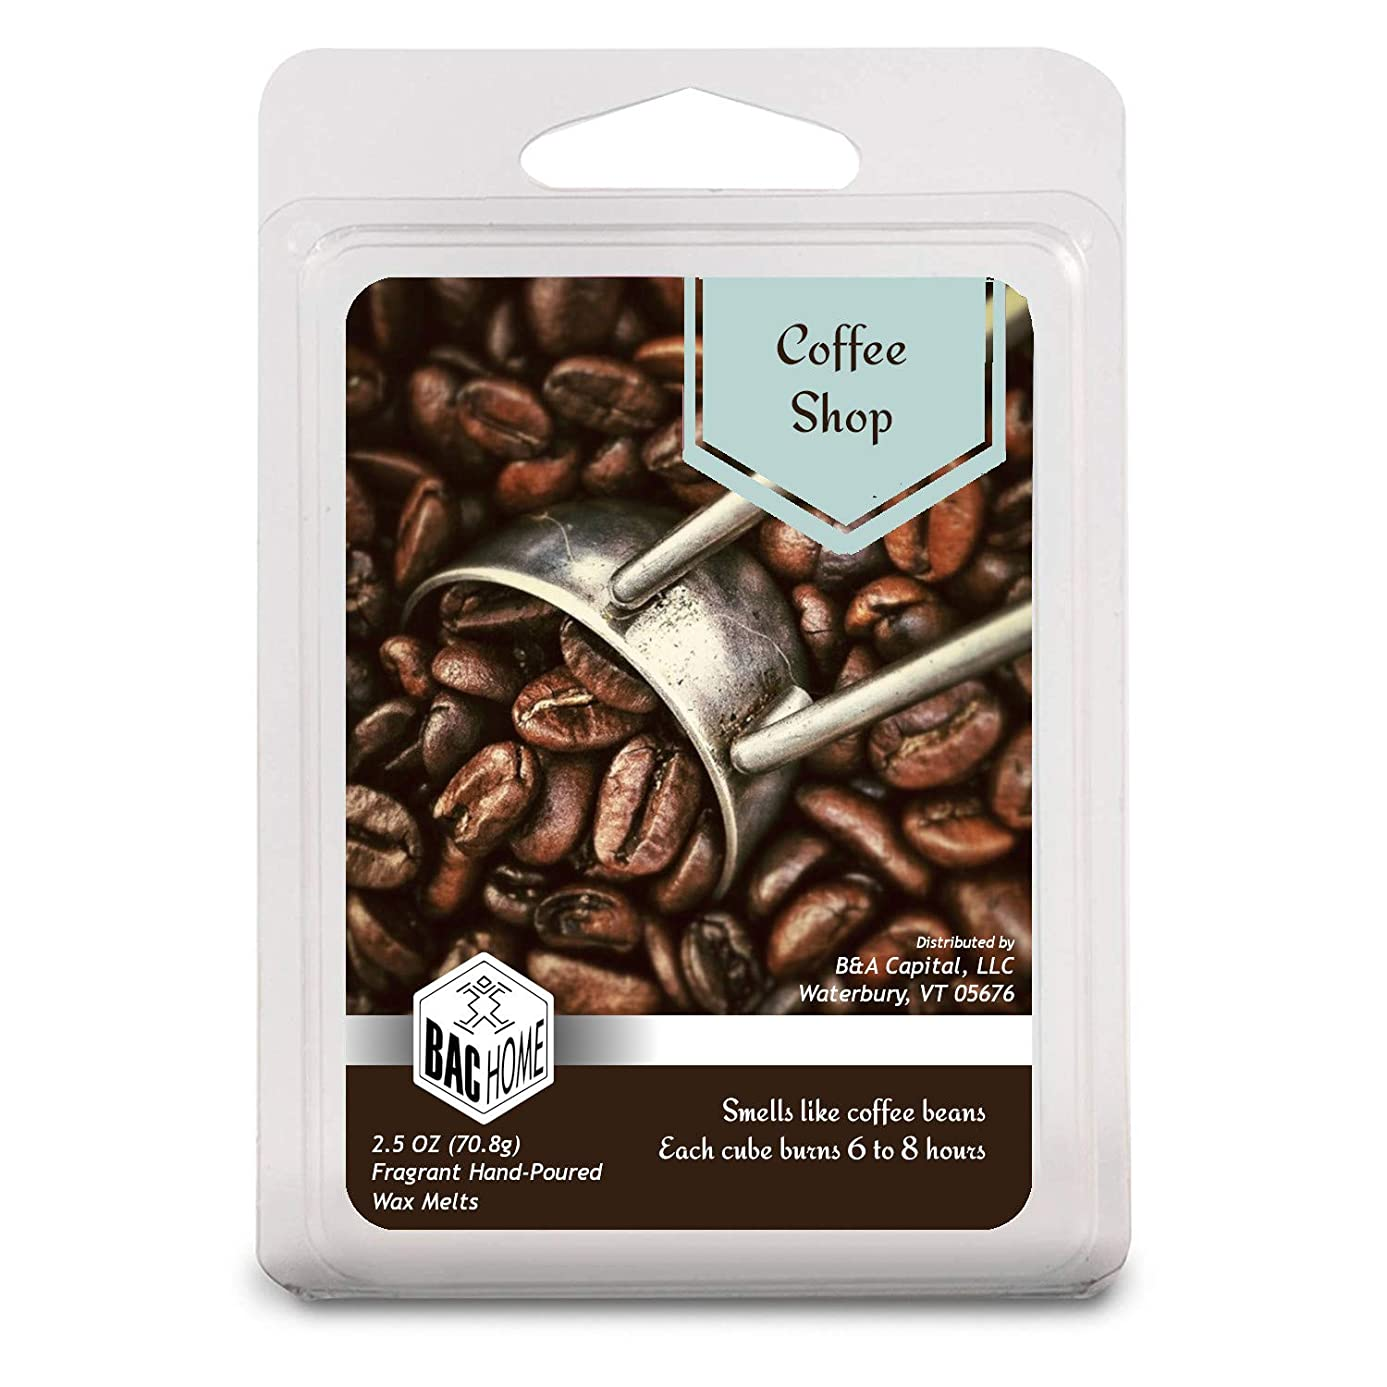 BAC Home Coffee Shop Soy Blend Scented Wax Cube Melts, 2.5 oz, [6 Cubes]